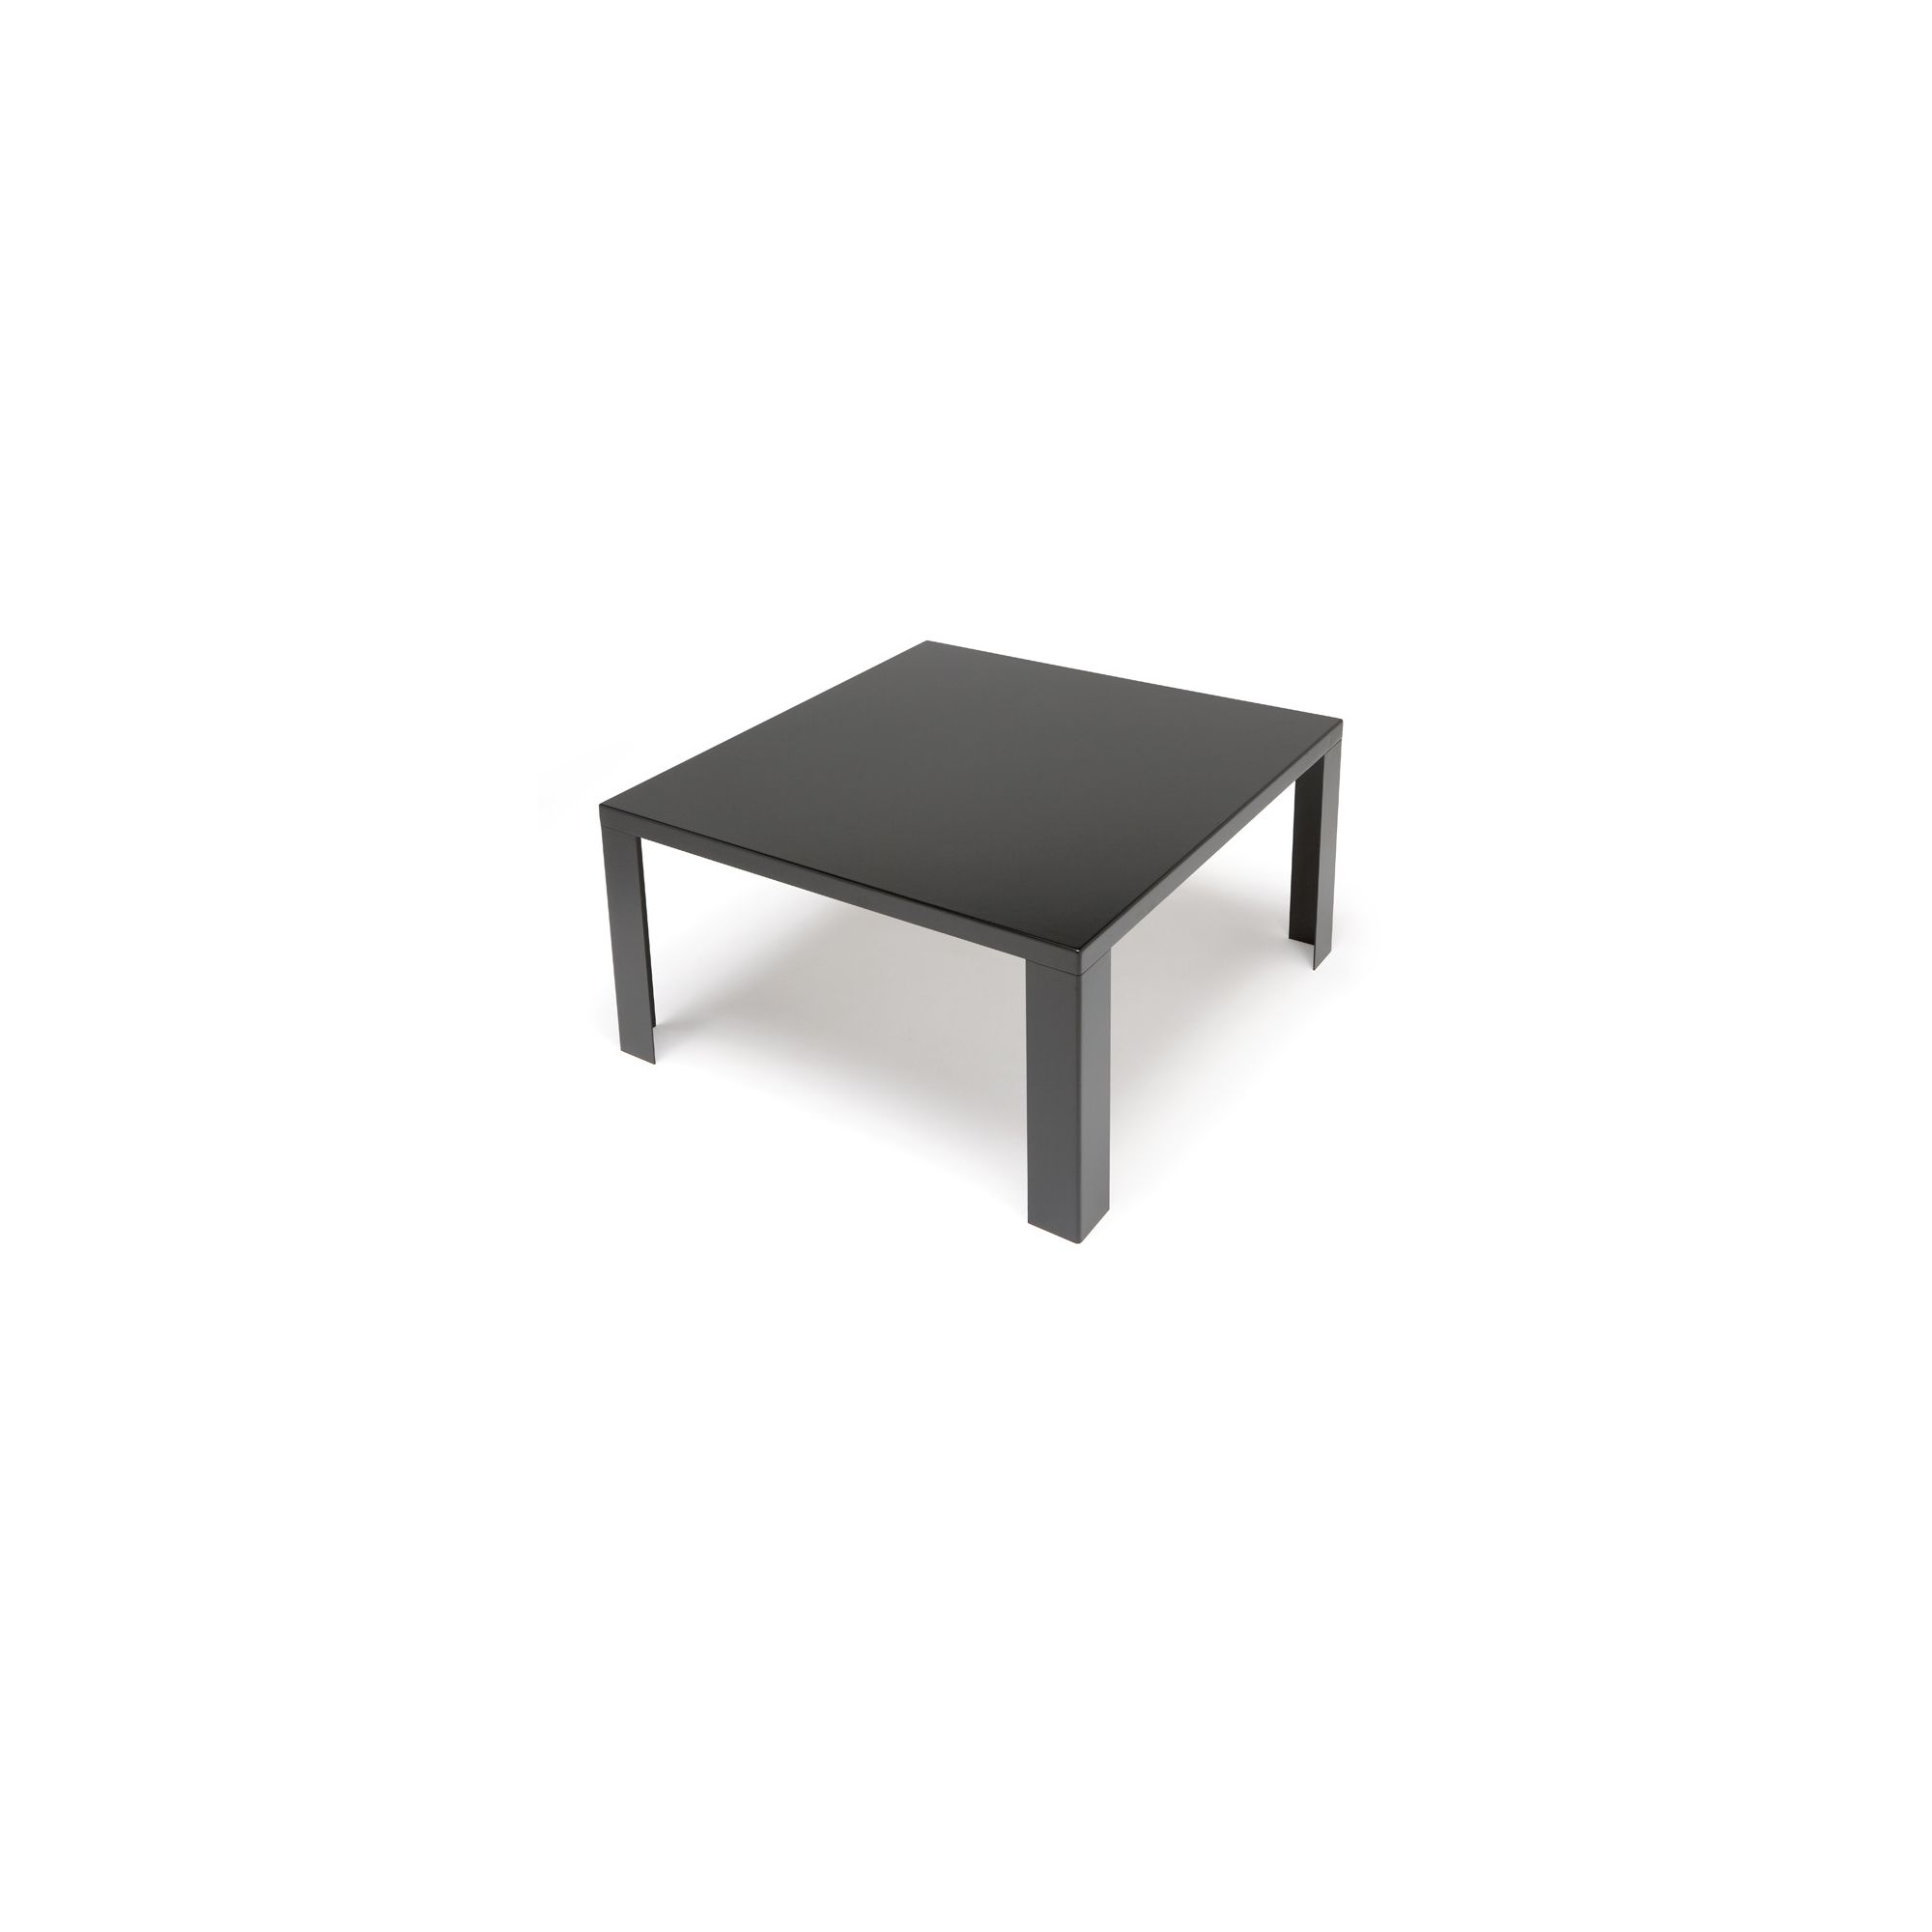 Andreu World Pure Coffee Table - 34cm x 110cm x 110cm - White